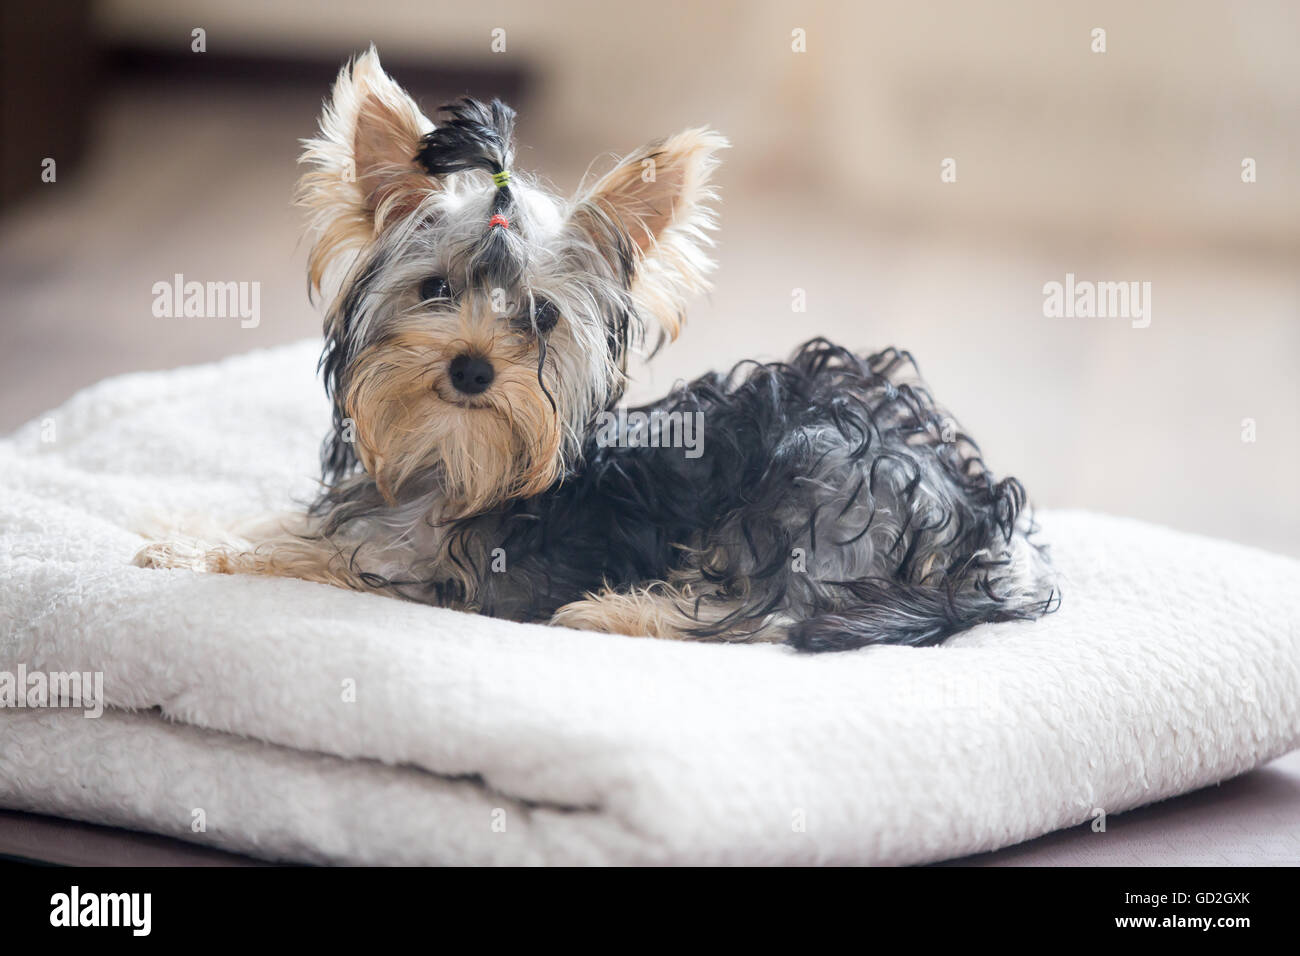 Cute adorable small dog wearing bow-tie lying on white towel in living room and looking at camera - Stock Image